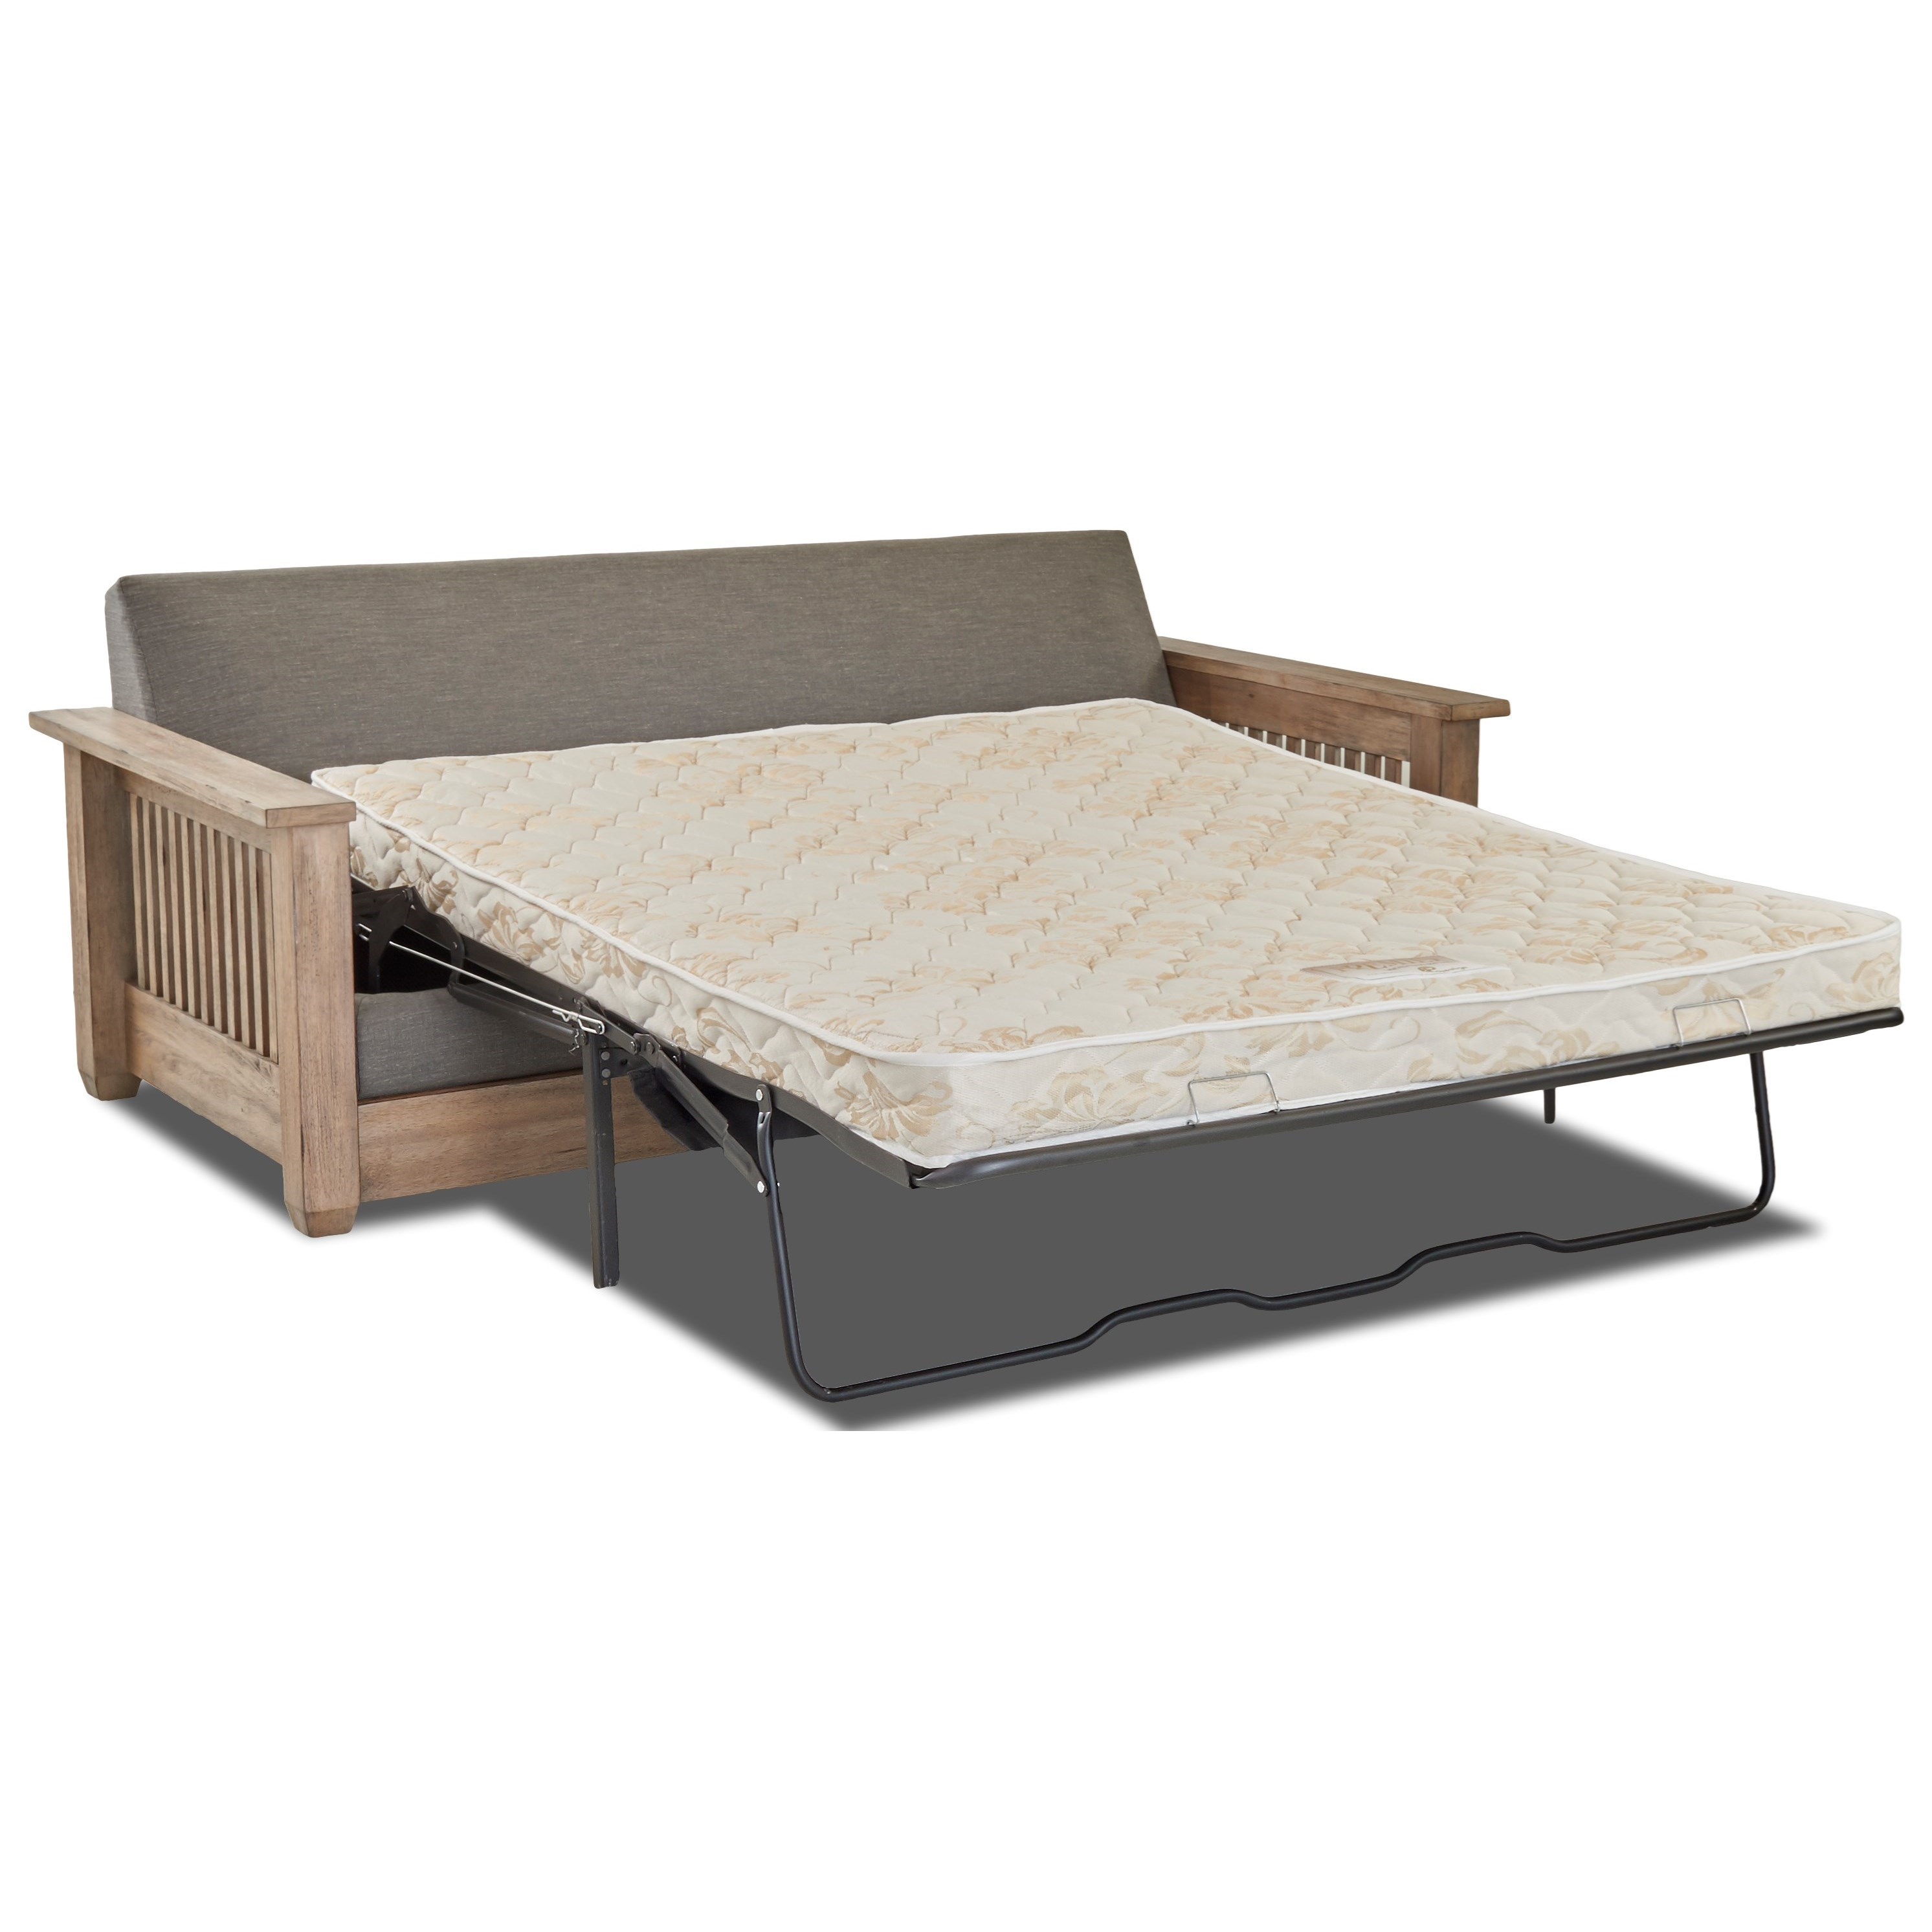 air coil mattress queen sleeper sofa with mission style arms by klaussner wolf and gardiner. Black Bedroom Furniture Sets. Home Design Ideas